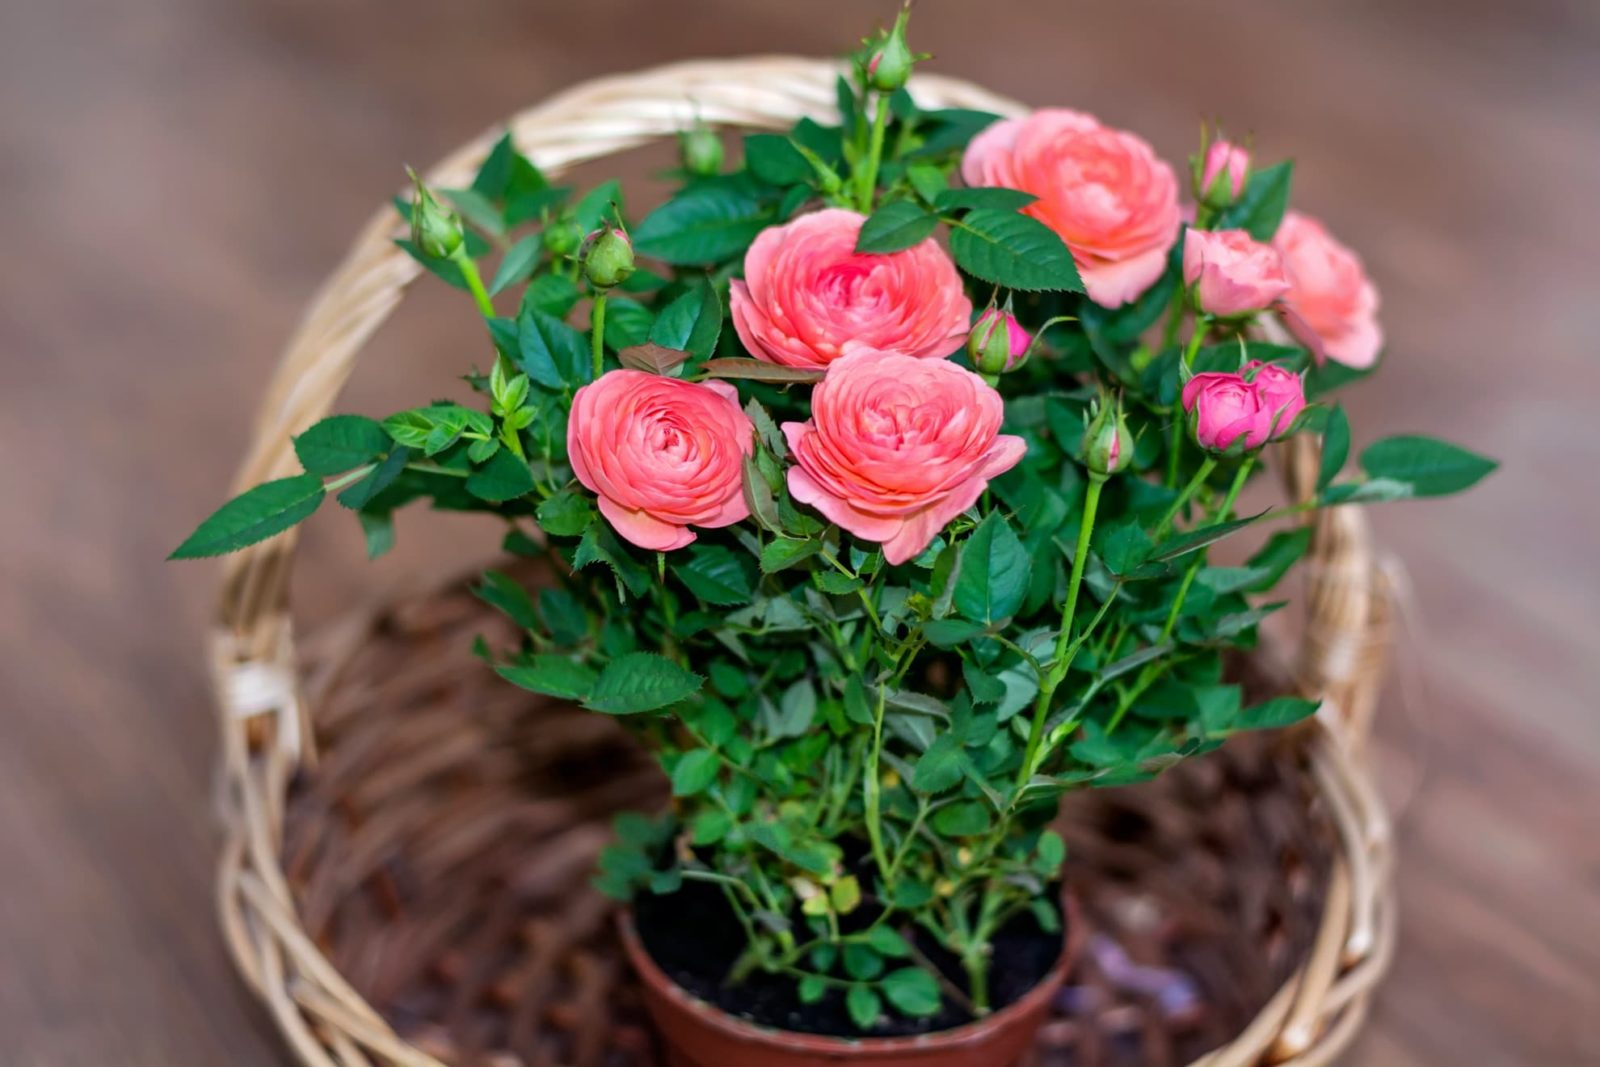 pink roses growing in a straw basket